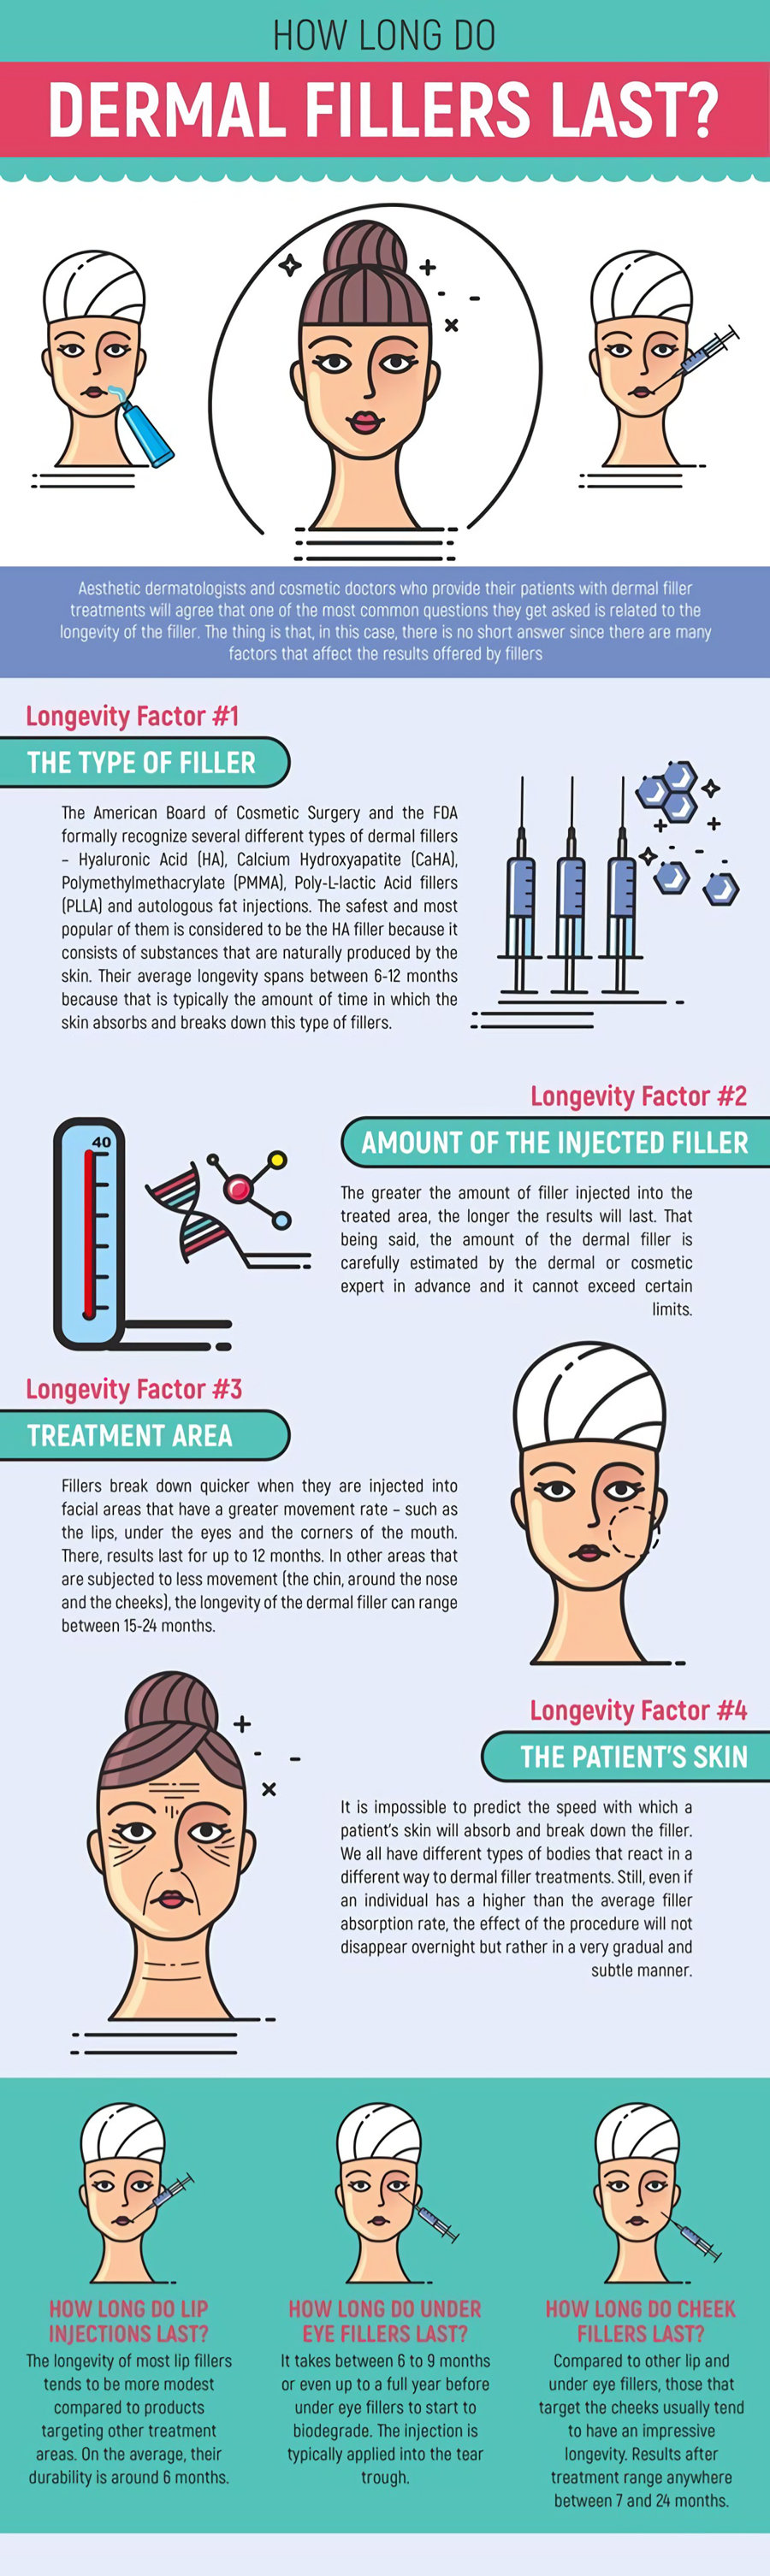 How long do dermal fillers last infographic